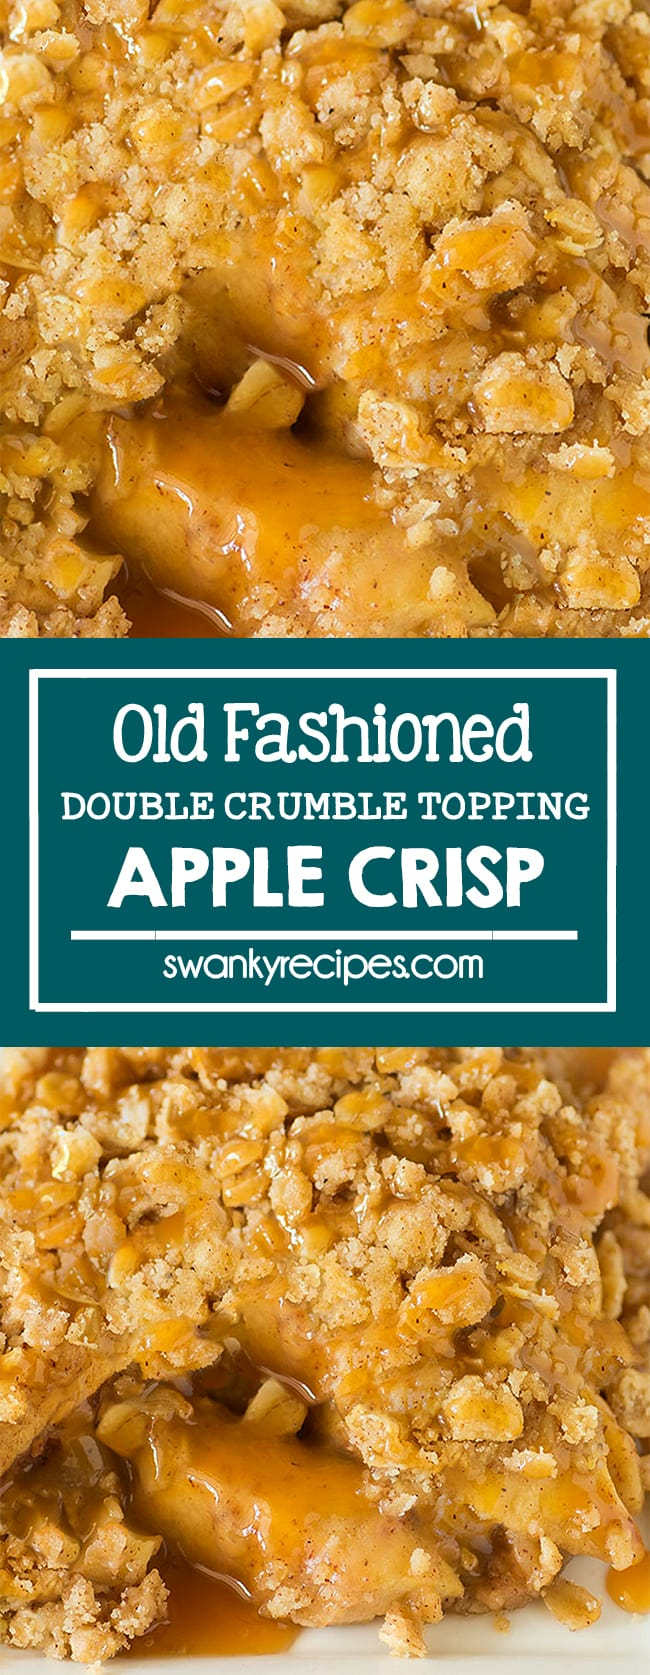 A close up of apple crisp with brown sugar buttery oat topping crumbles throughout with a soft apple and caramel sauce drizzle. Text in green border in center says old fashioned double crumble topping apple crisp. Bottom photo is the same as first but further away on a white plate.